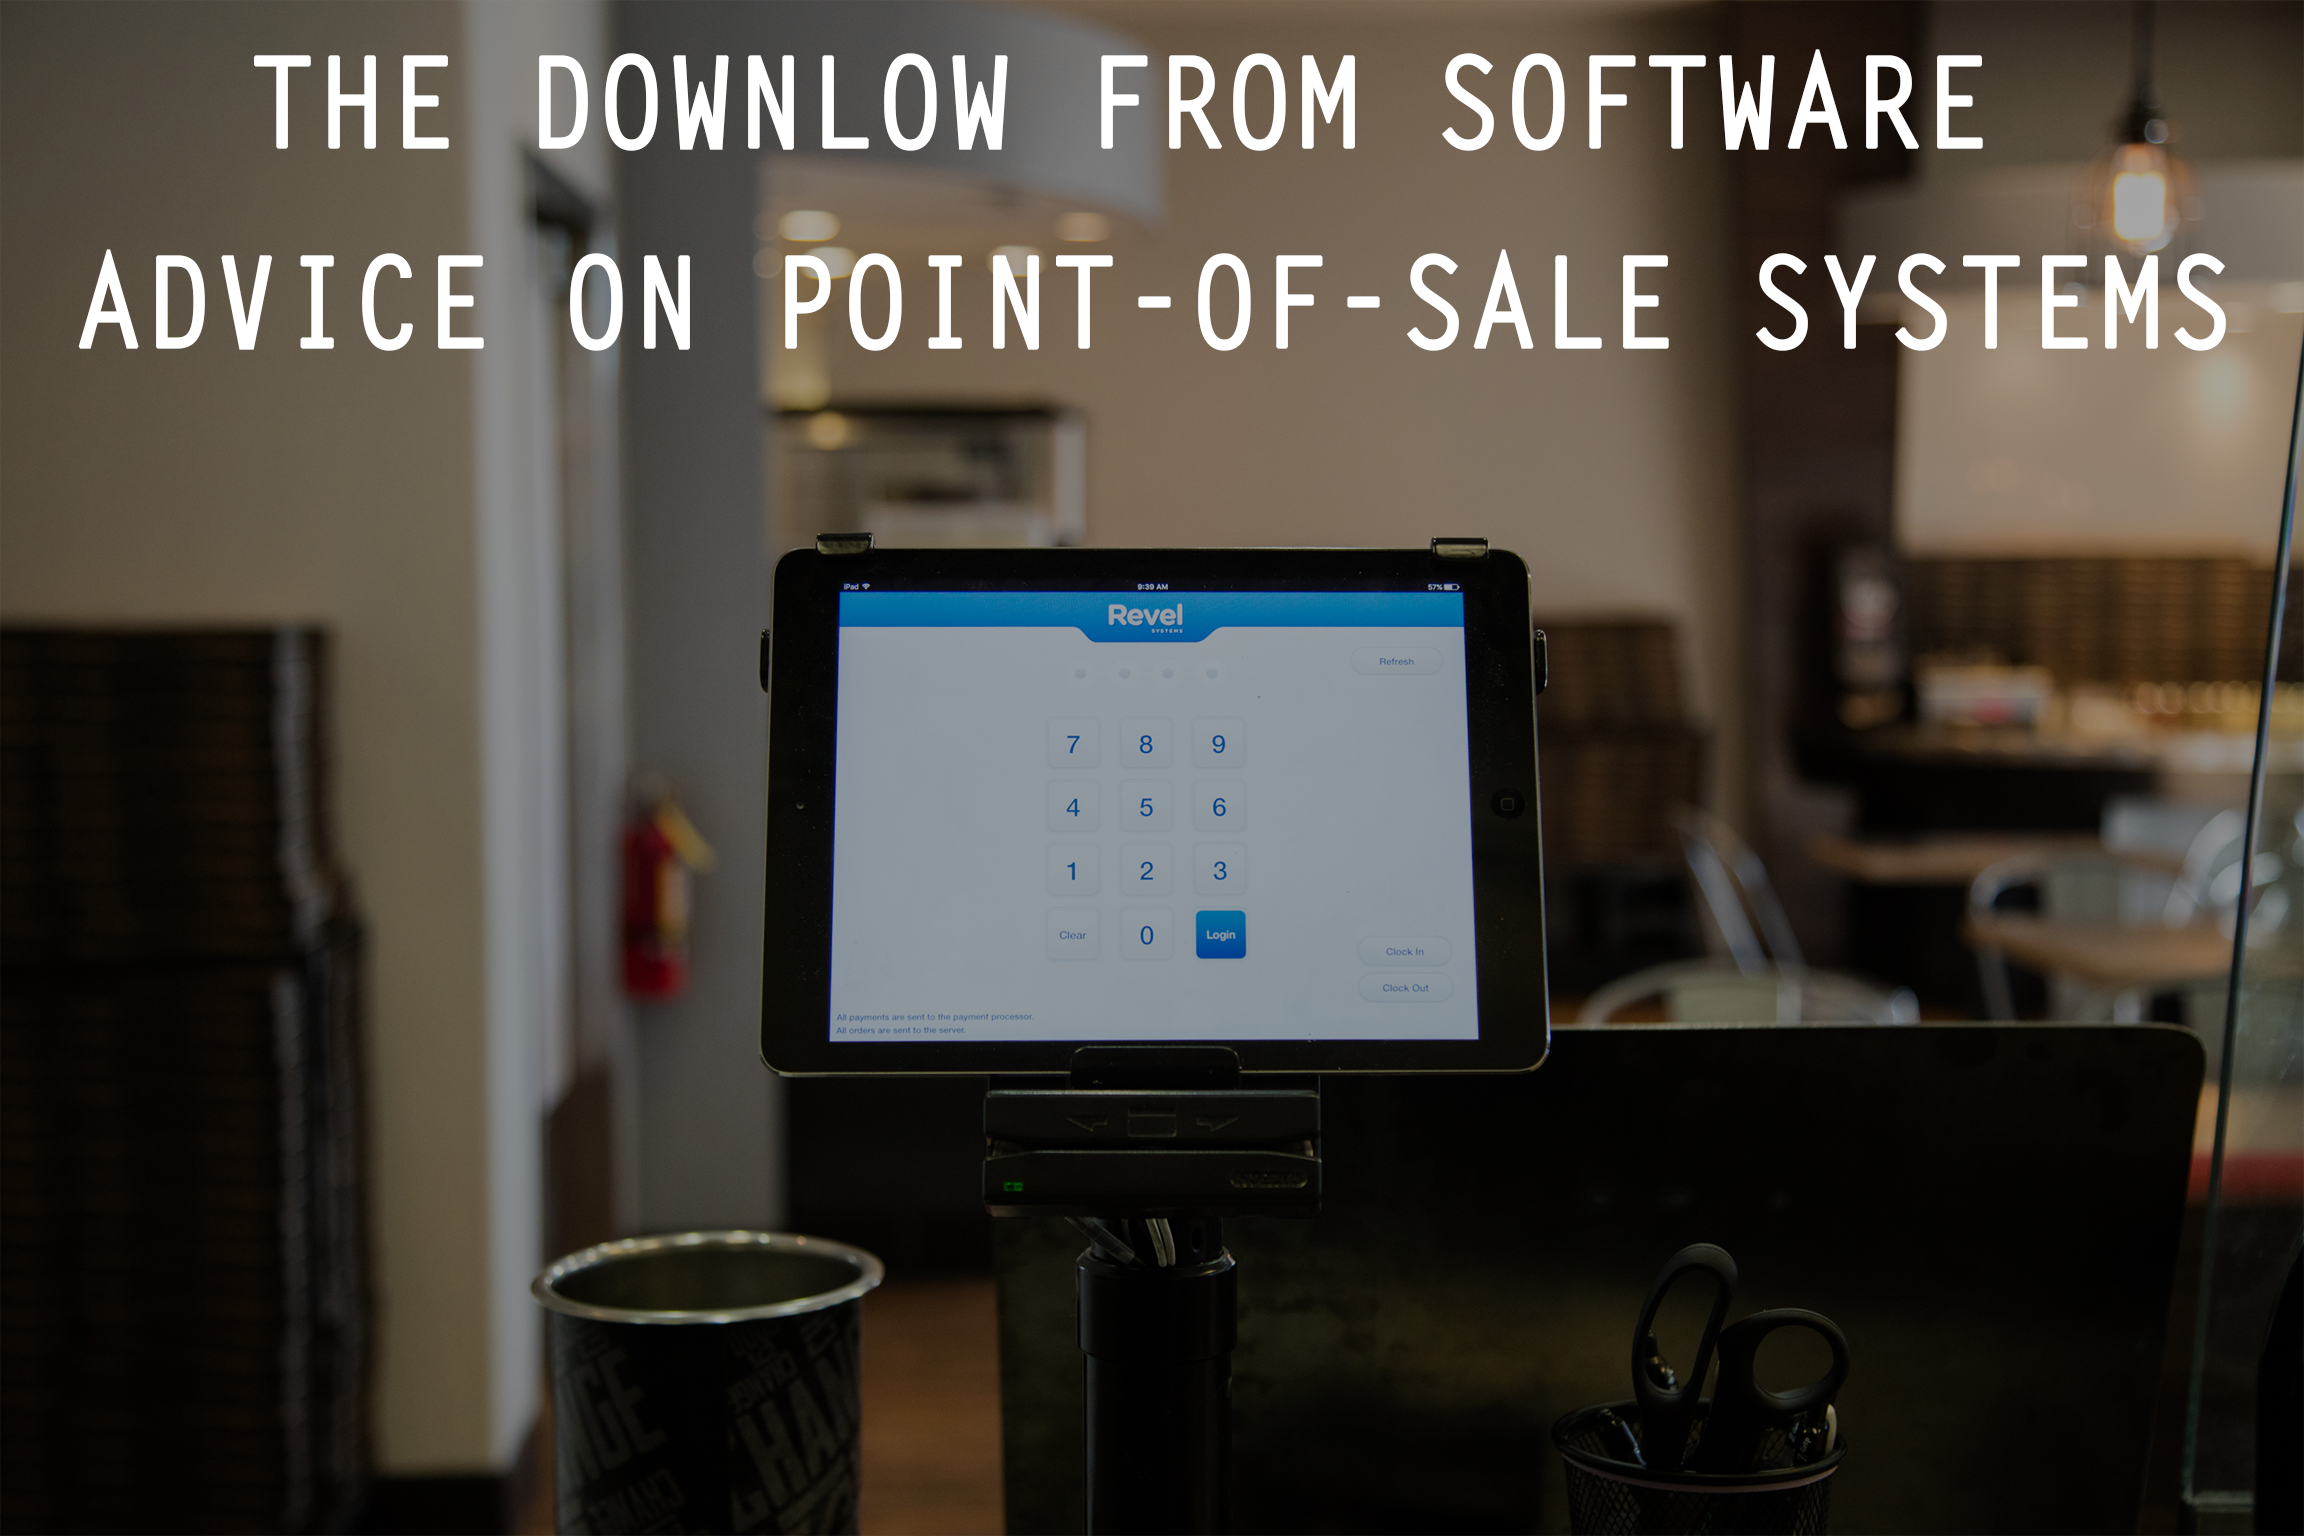 The Downlow From Software Advice on Point-of-Sale Systems